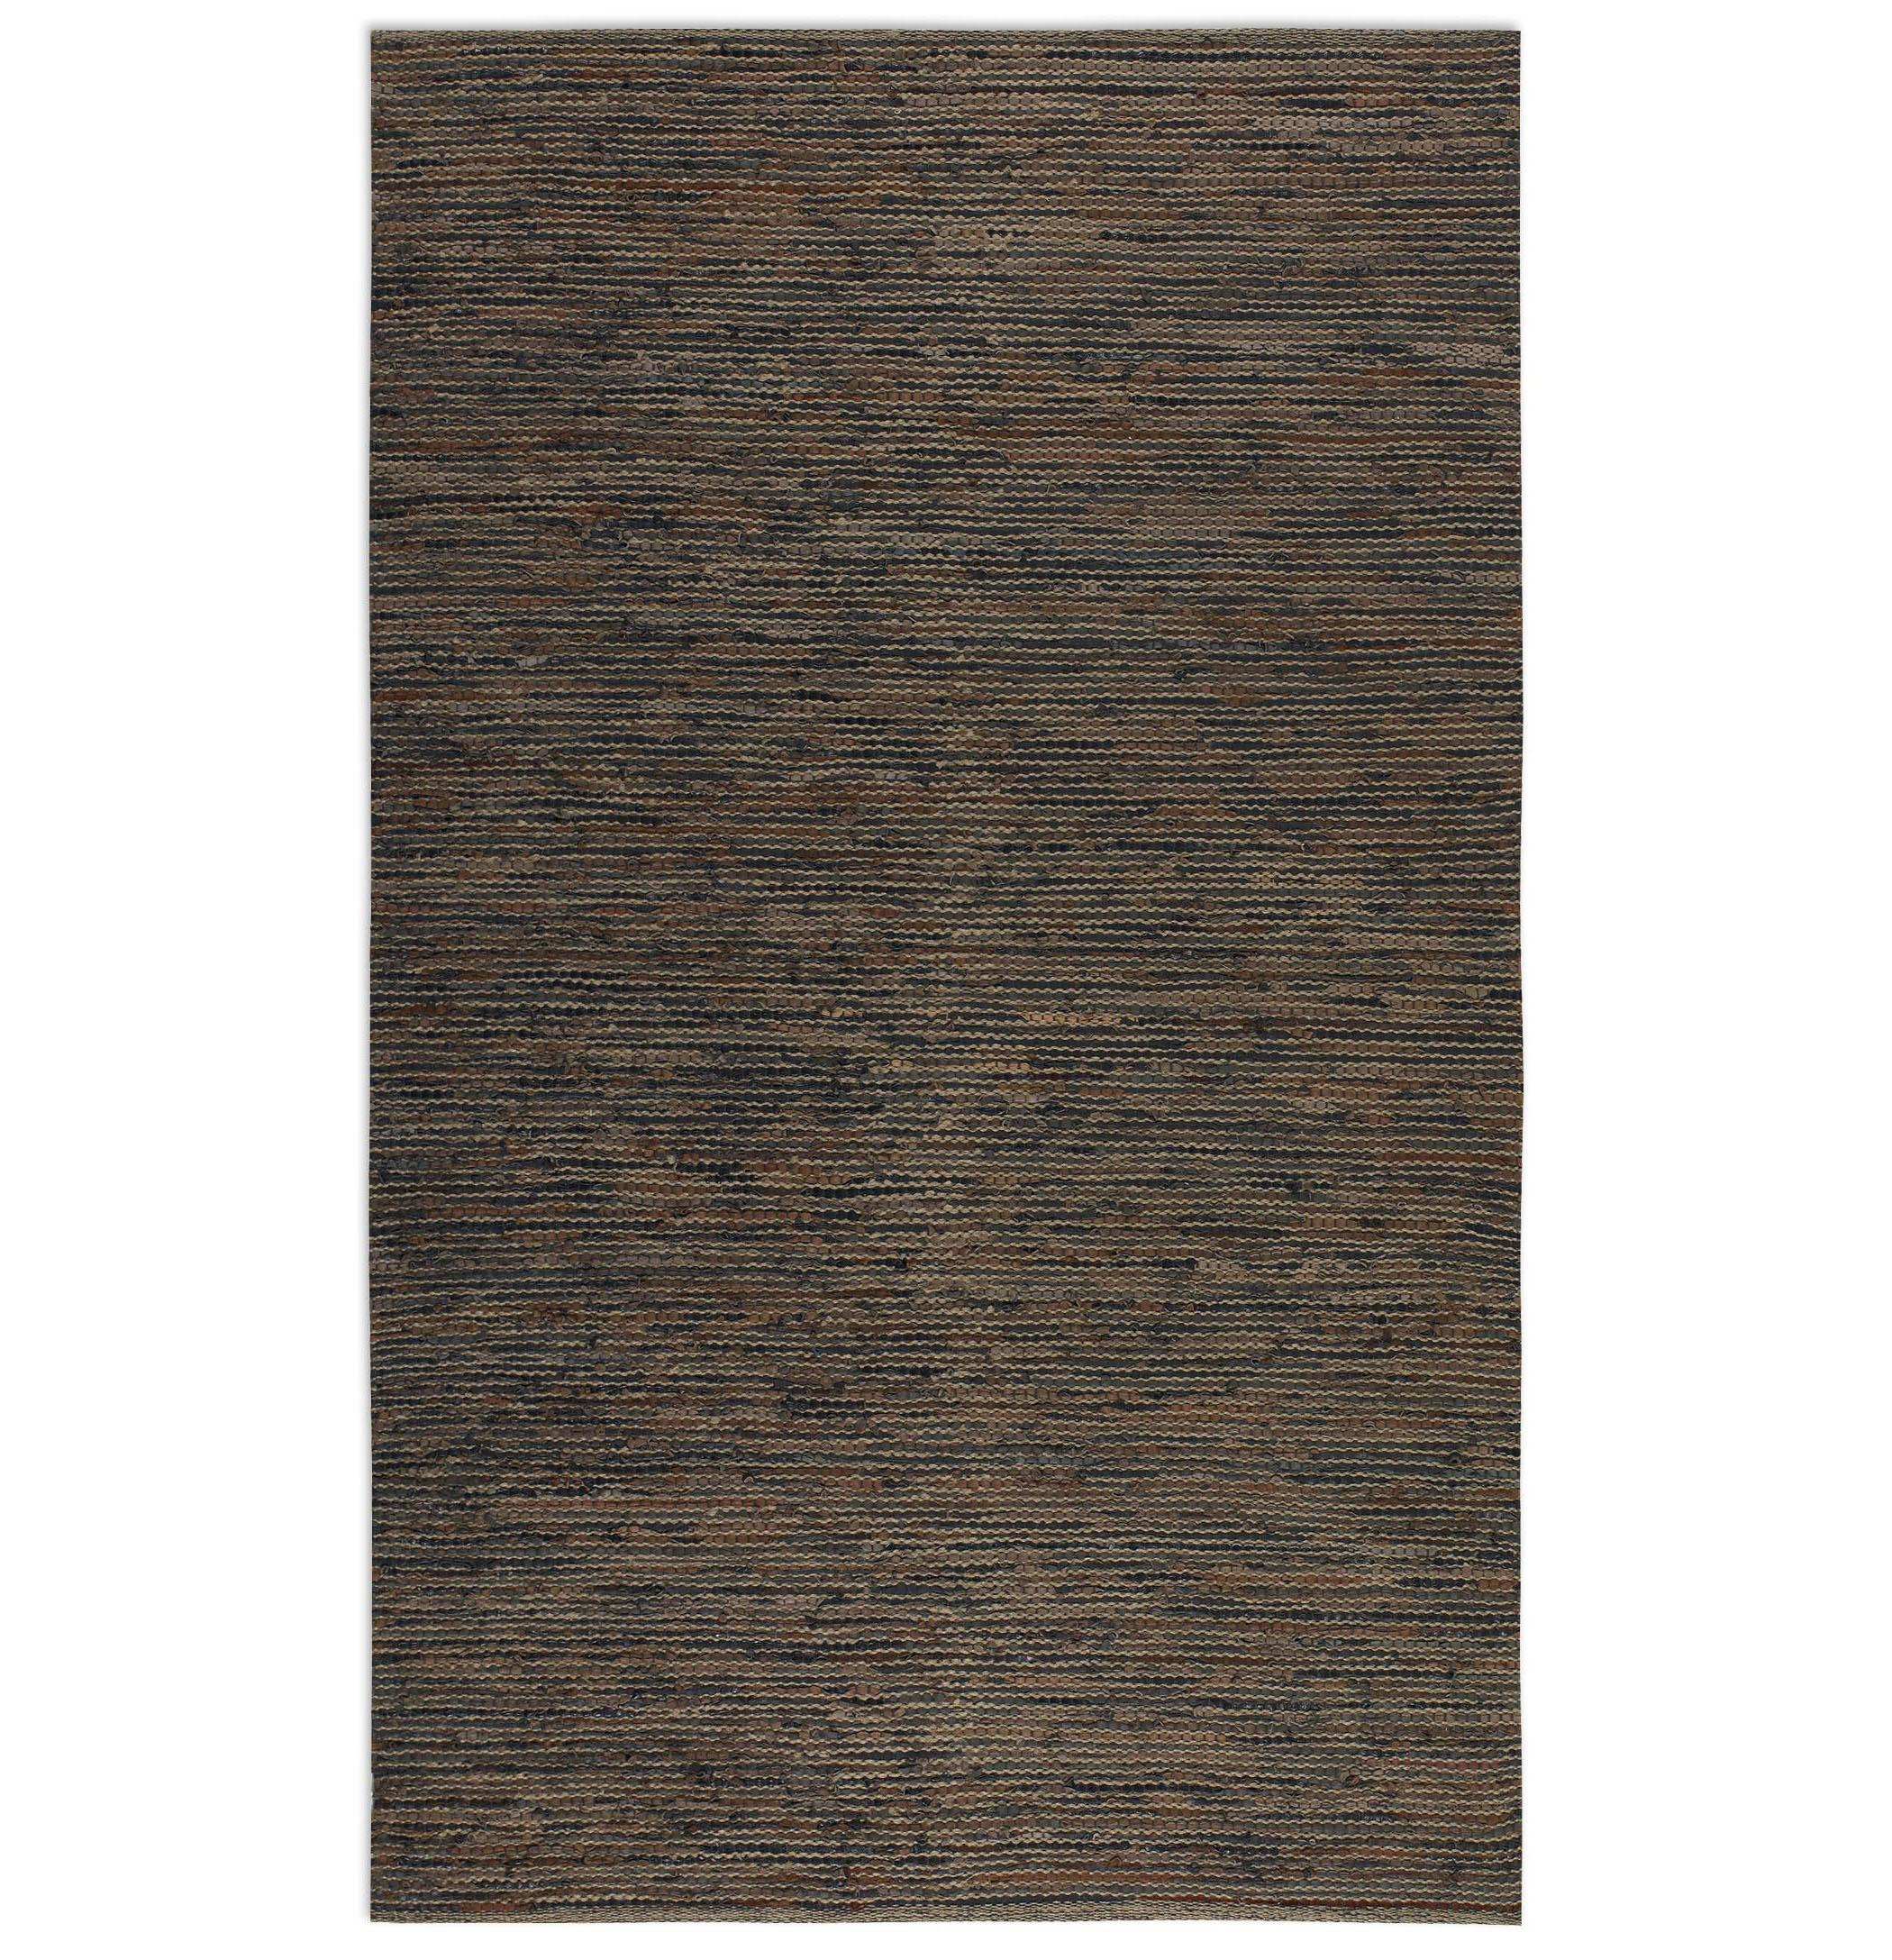 Uttermost Rugs Culver 5 X 8 Rug - Brown Rust - Item Number: 71043-5